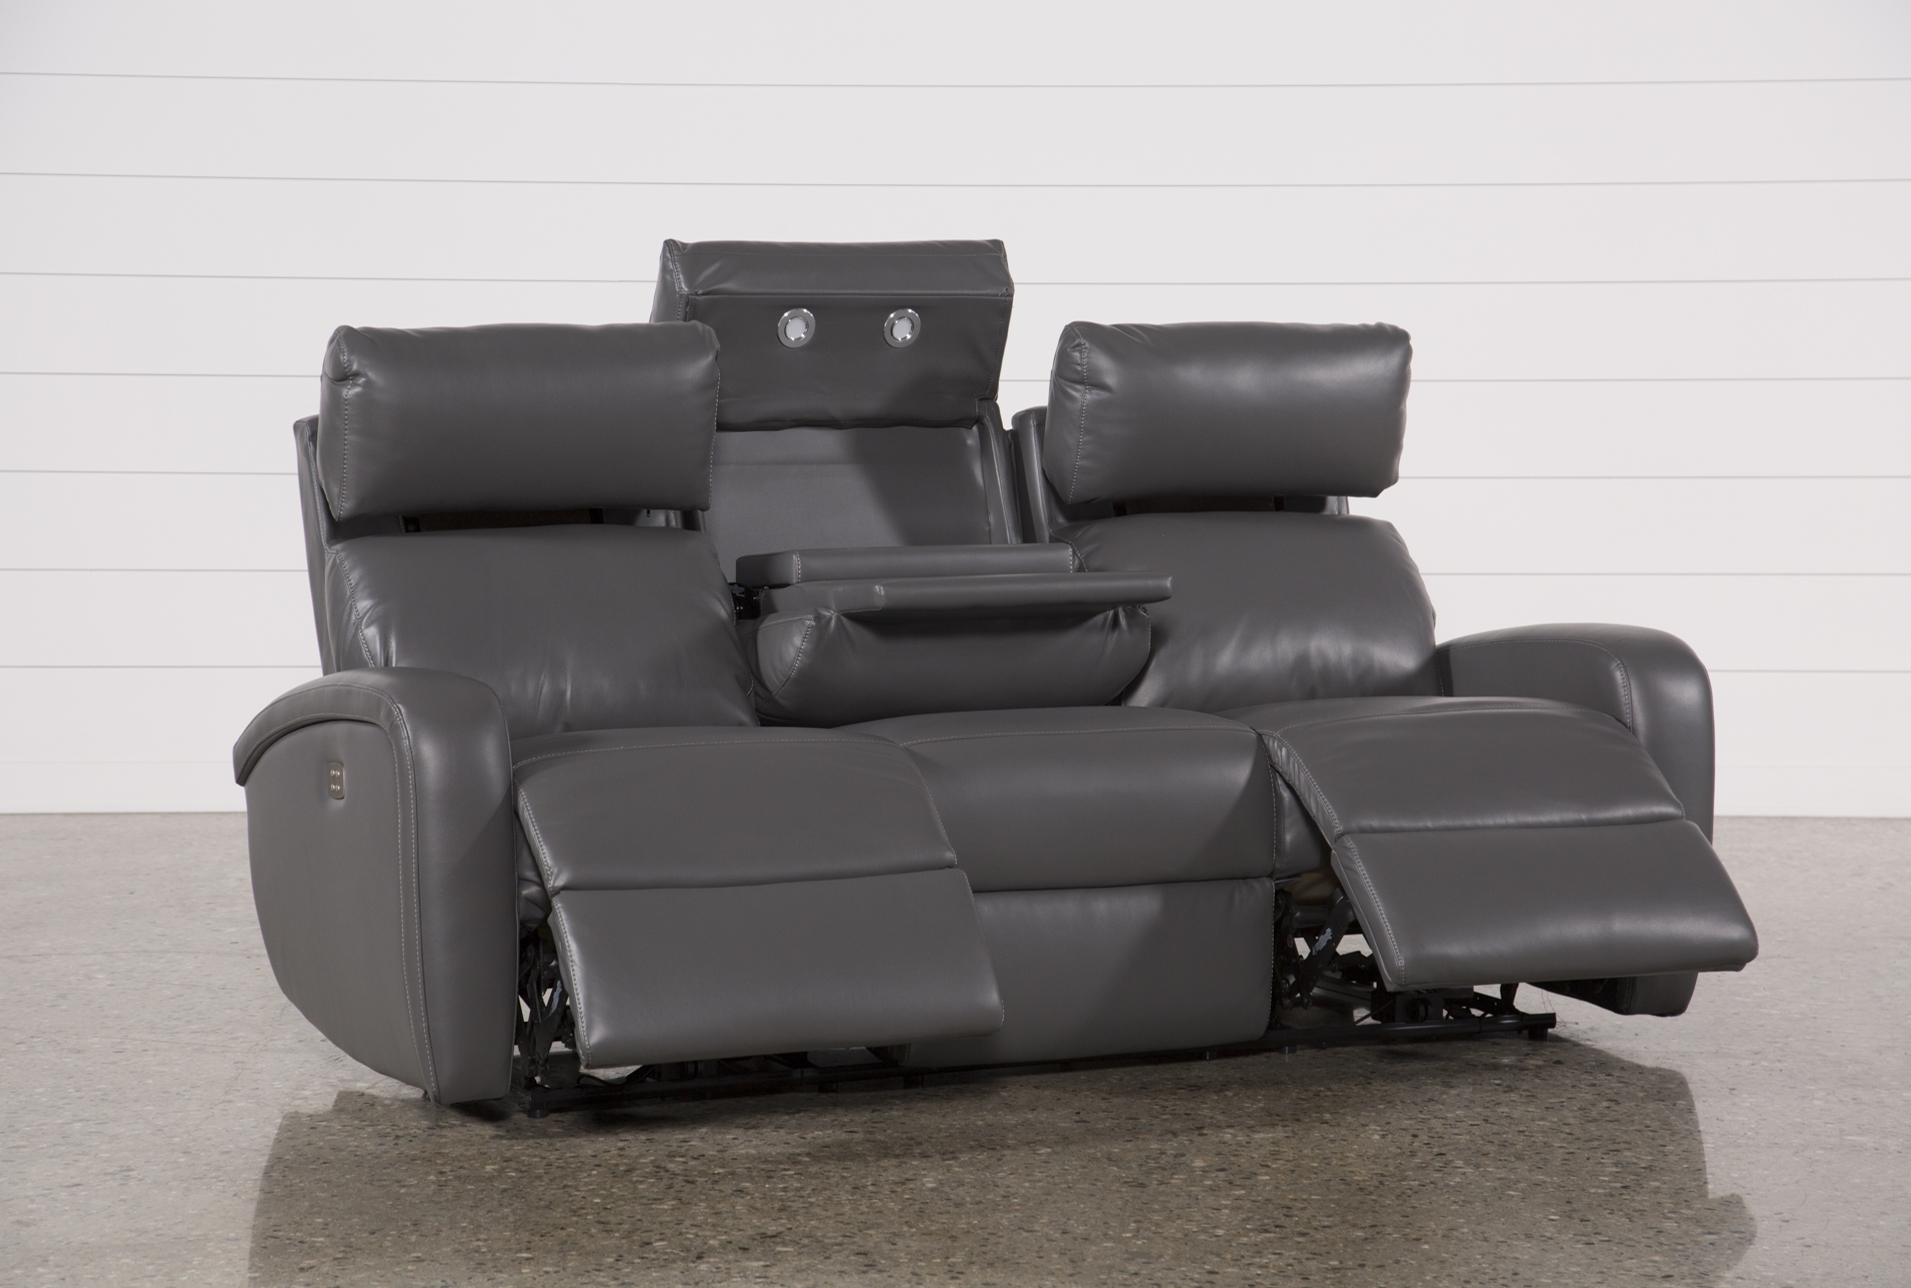 Darwin Graphite Power Reclining Sofa | Reclining Sofa And House for Denali Charcoal Grey 6 Piece Reclining Sectionals With 2 Power Headrests (Image 10 of 30)